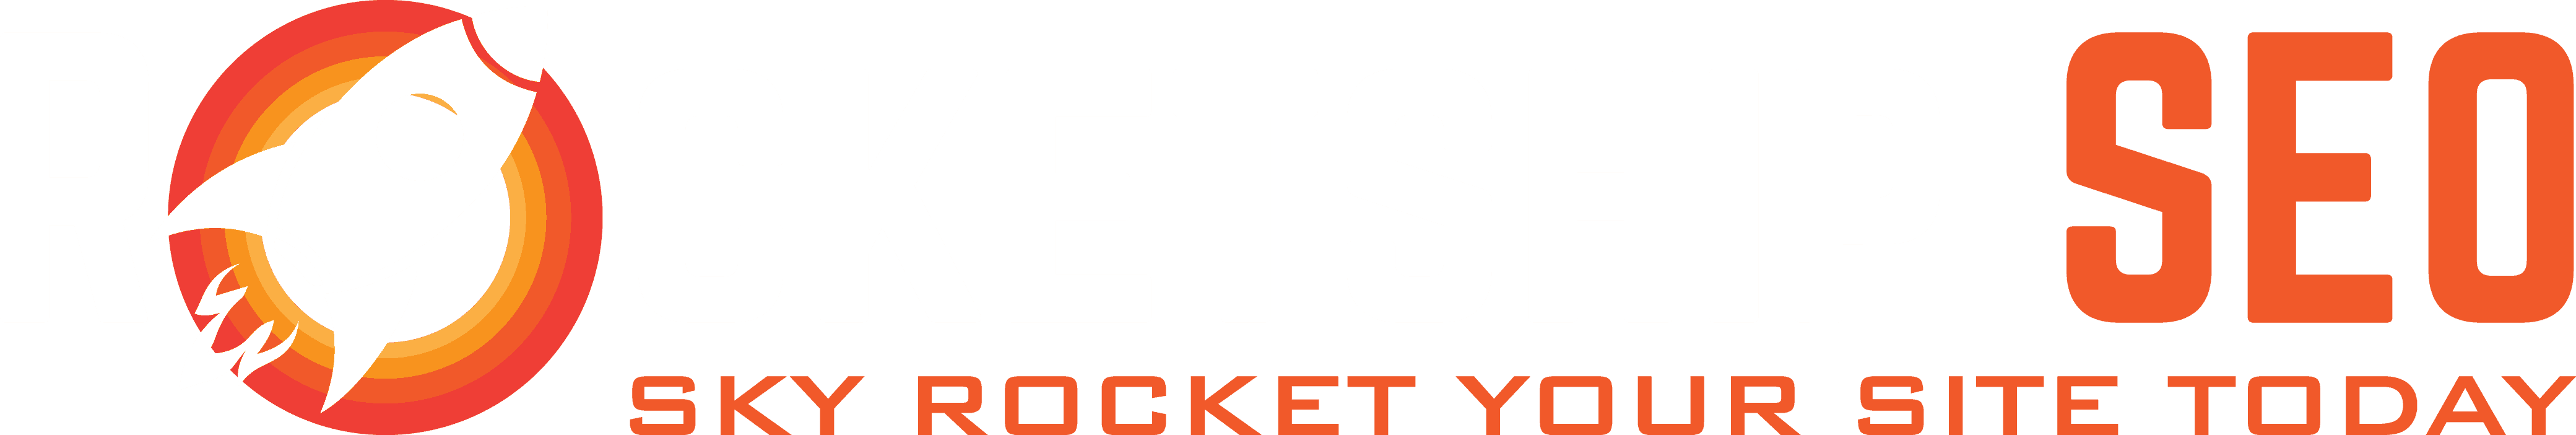 Sky Rocket Your Site Today